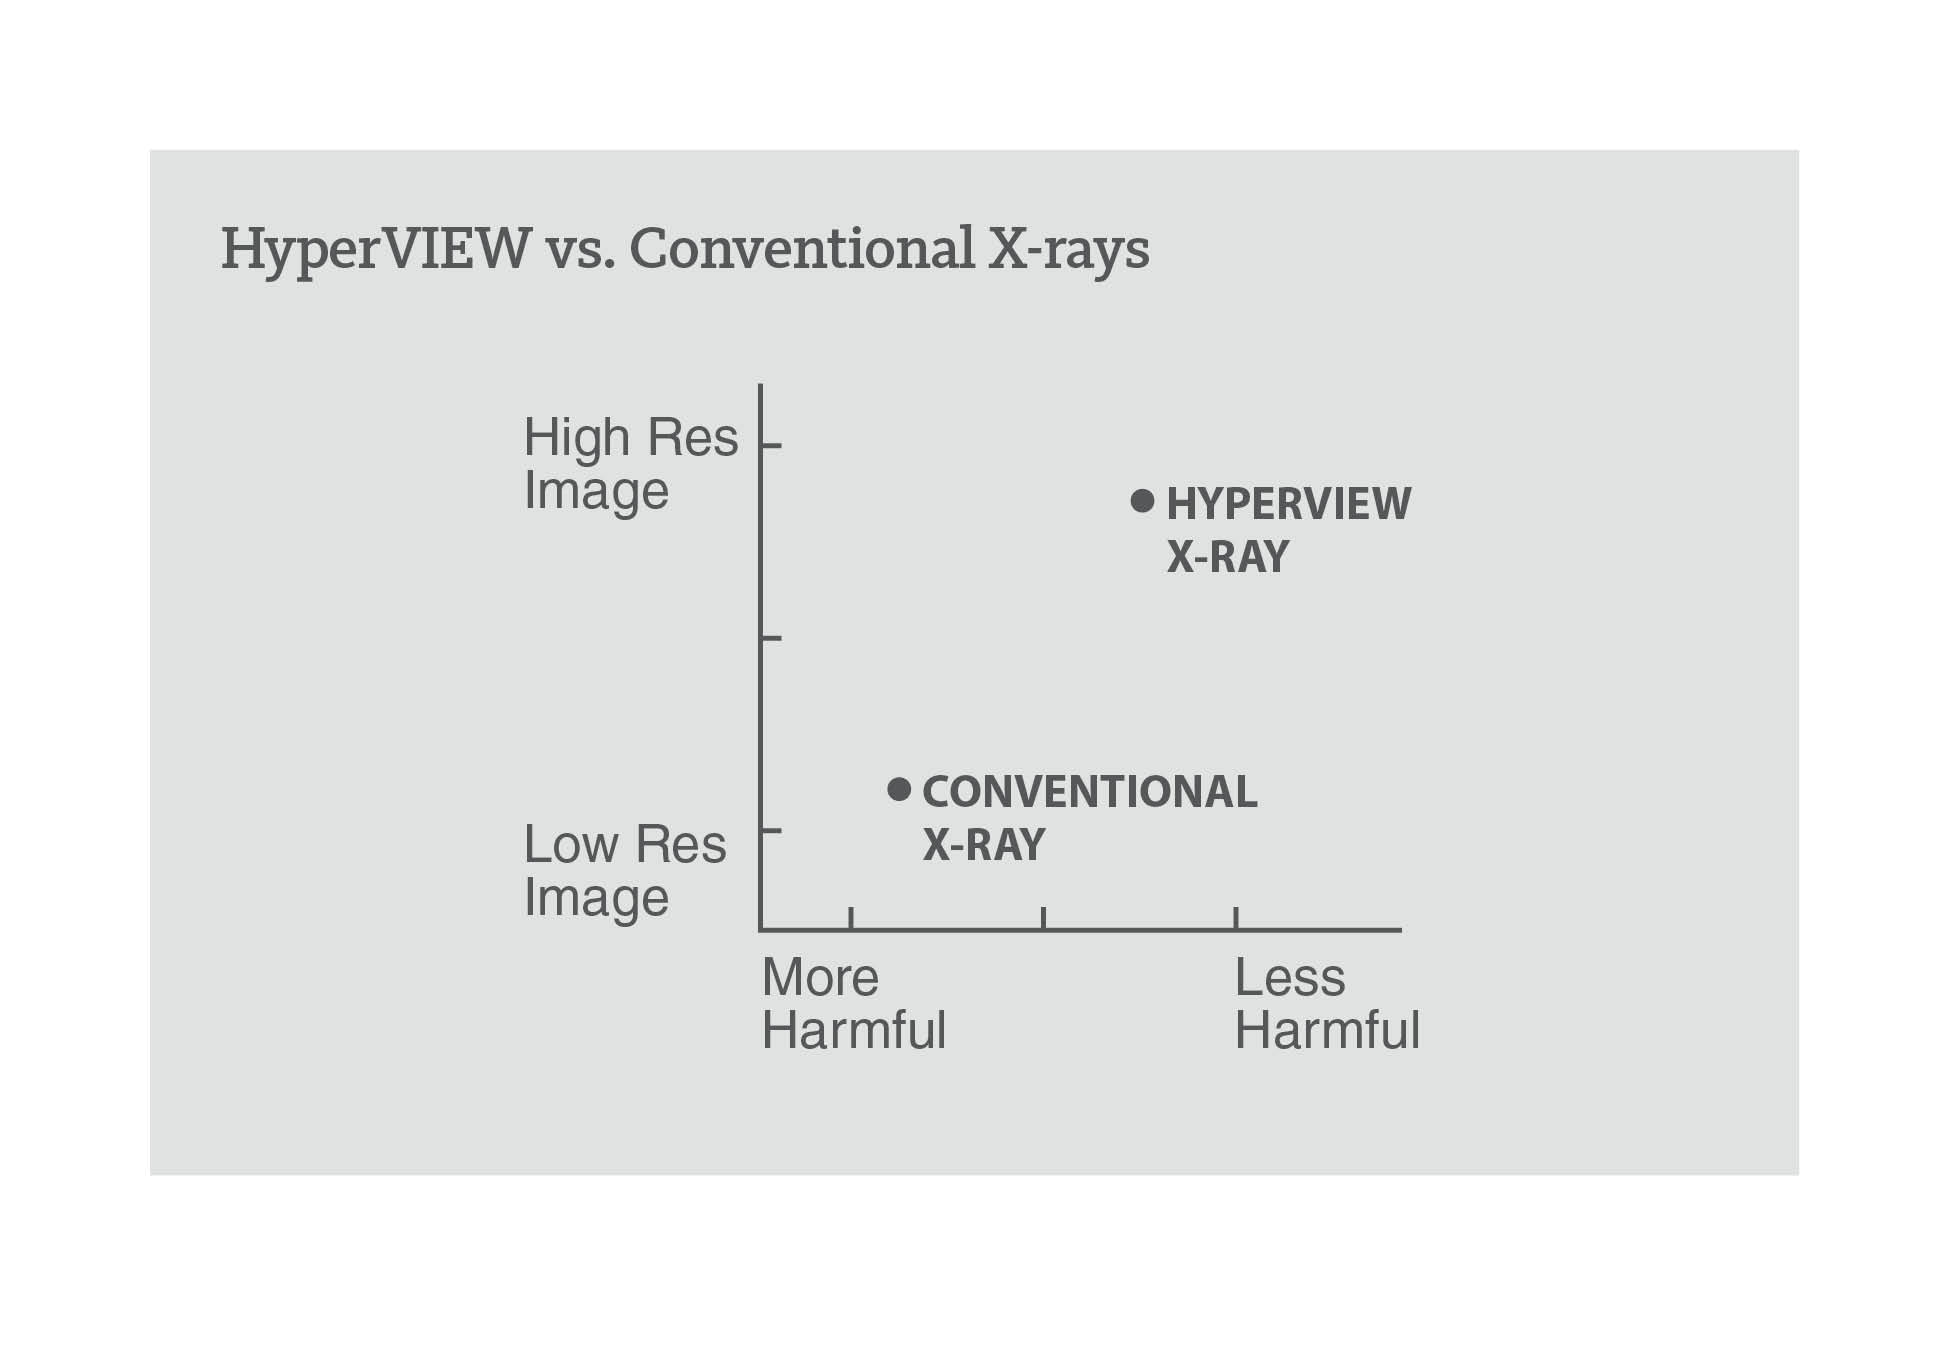 HYPERview is an advanced x-ray platform that provides a clearer, high-resolution image and is not as harmful as conventional x-ray machines.